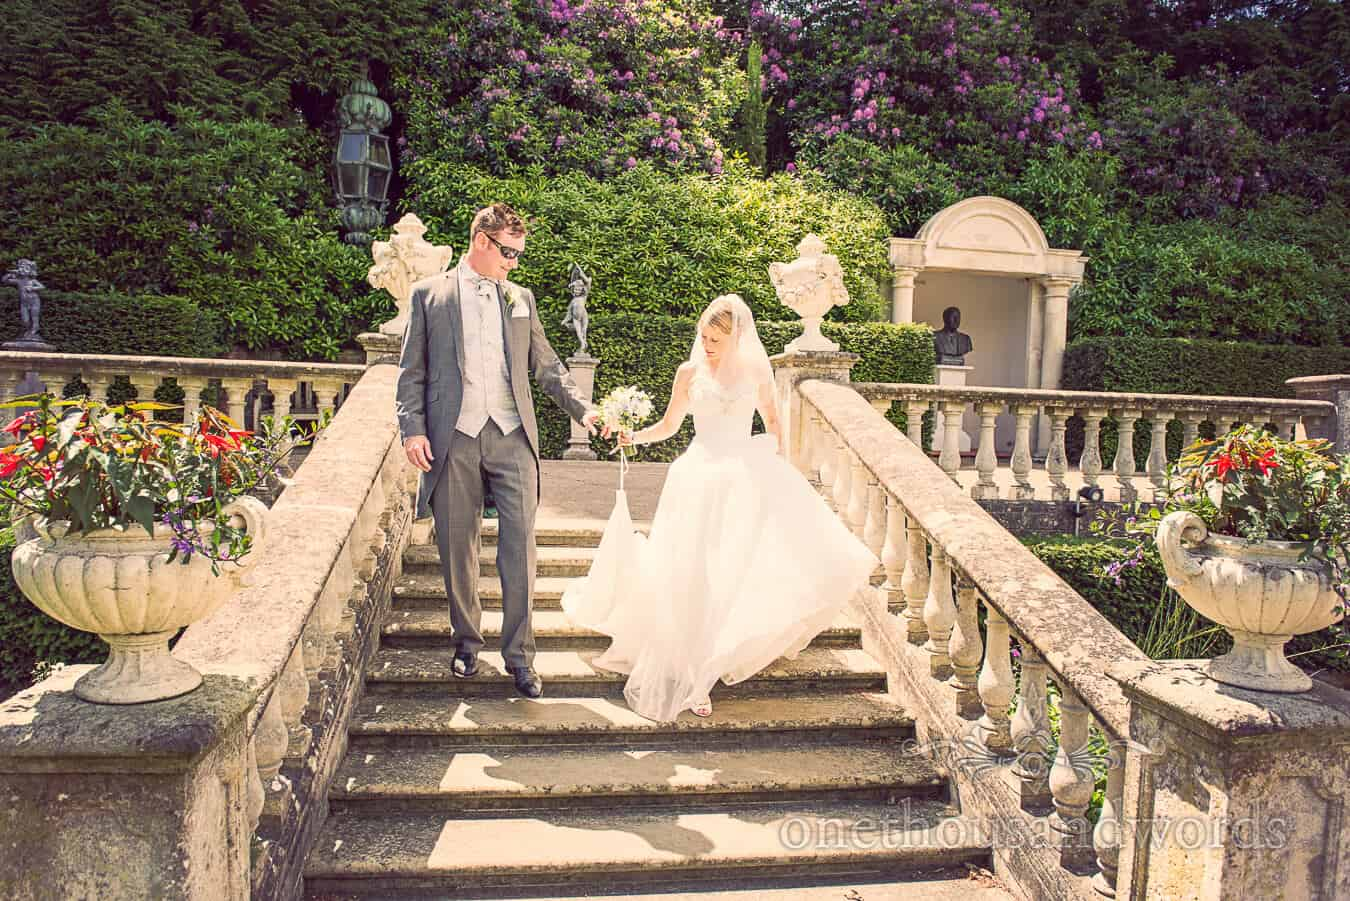 Bride and groom on stone stair case at Italian Villa Wedding venue in Dorset